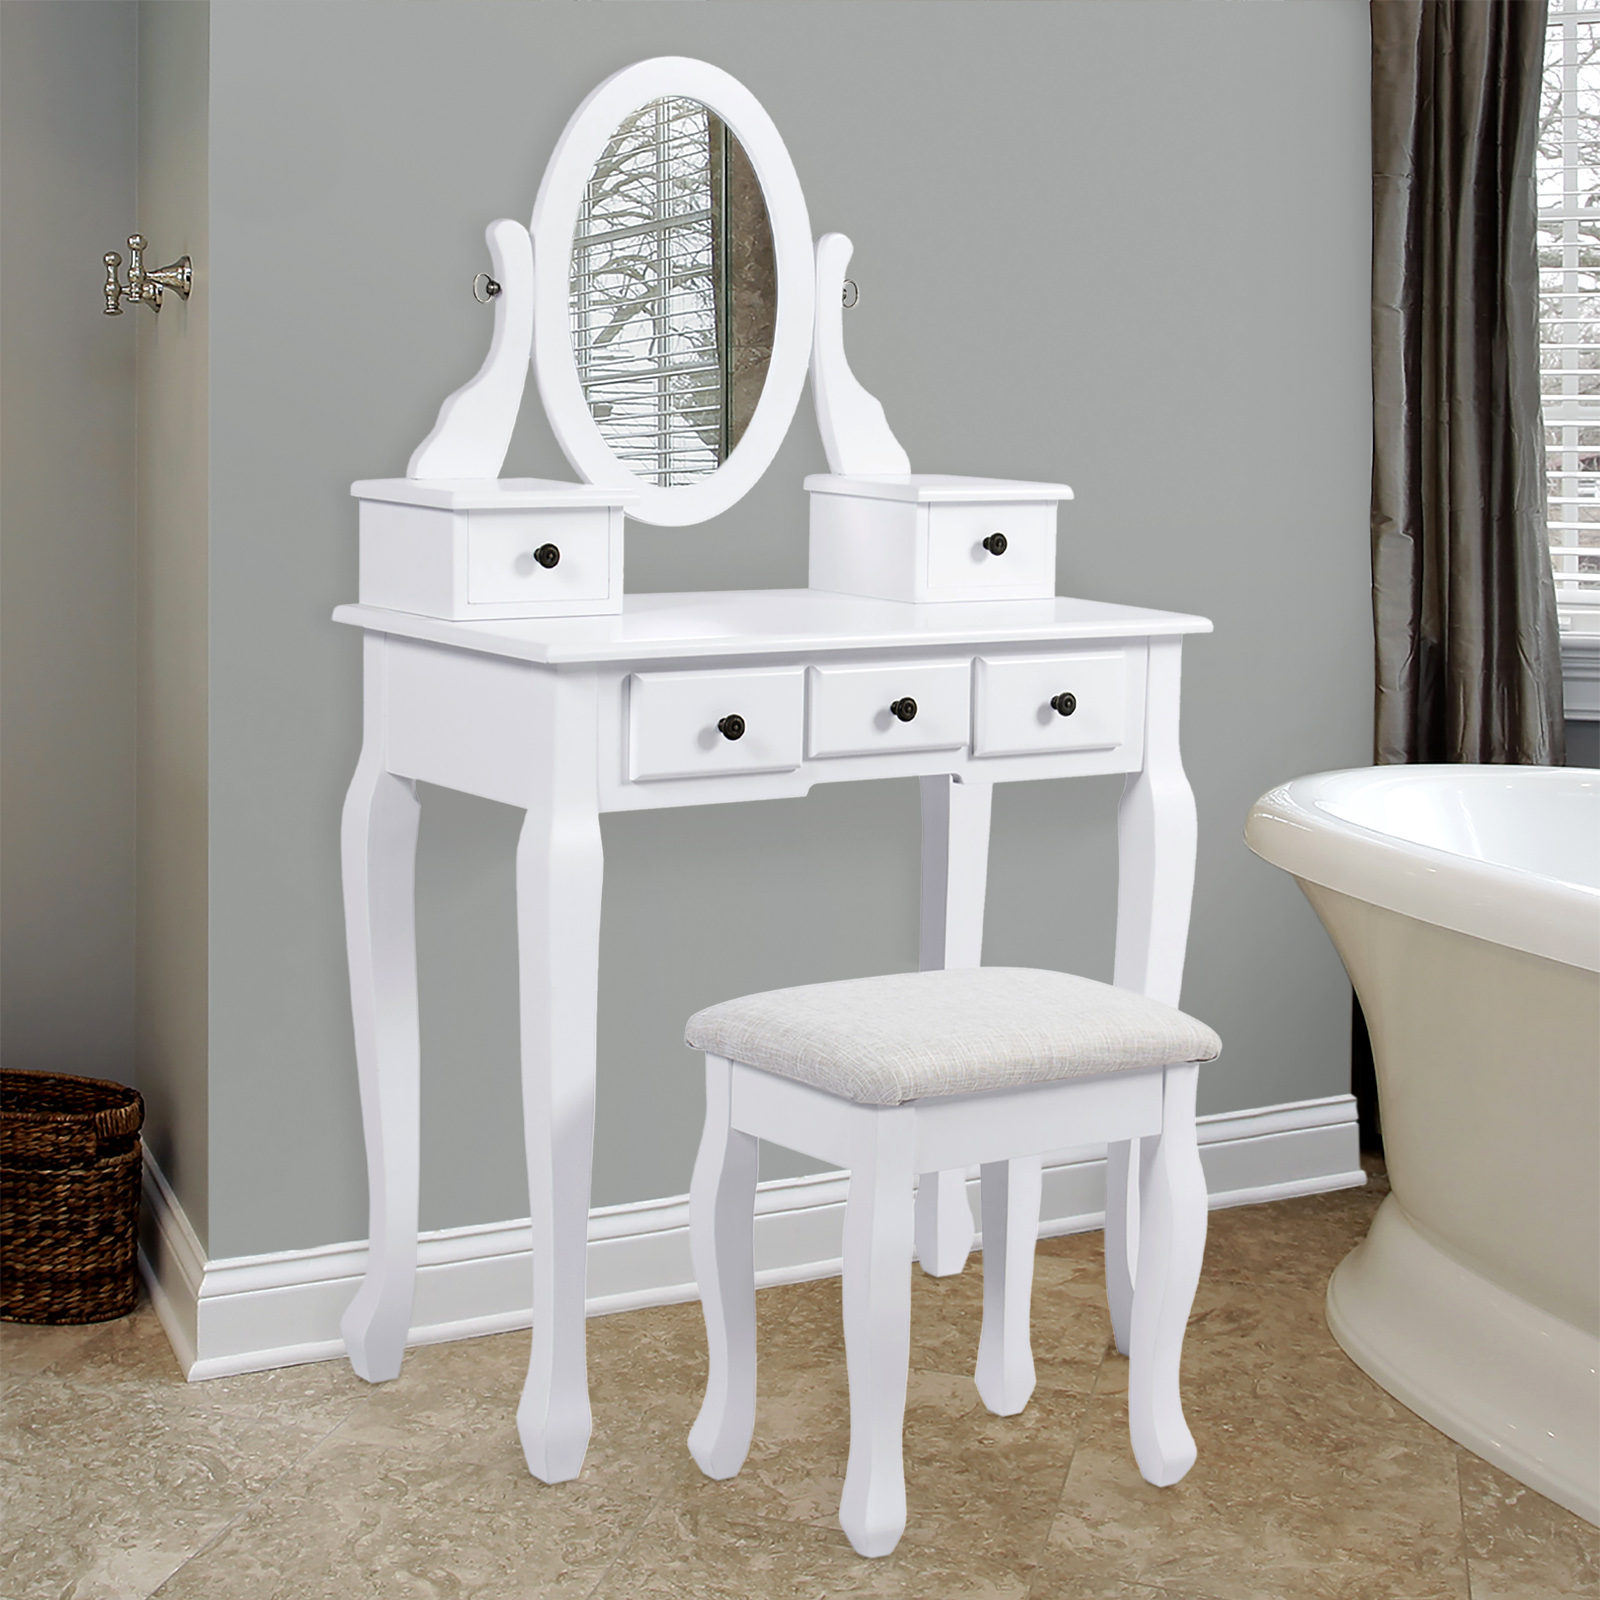 Bathroom Vanity Table Jewelry Makeup Desk Hair Dressing Organizer Bench Drawer White by